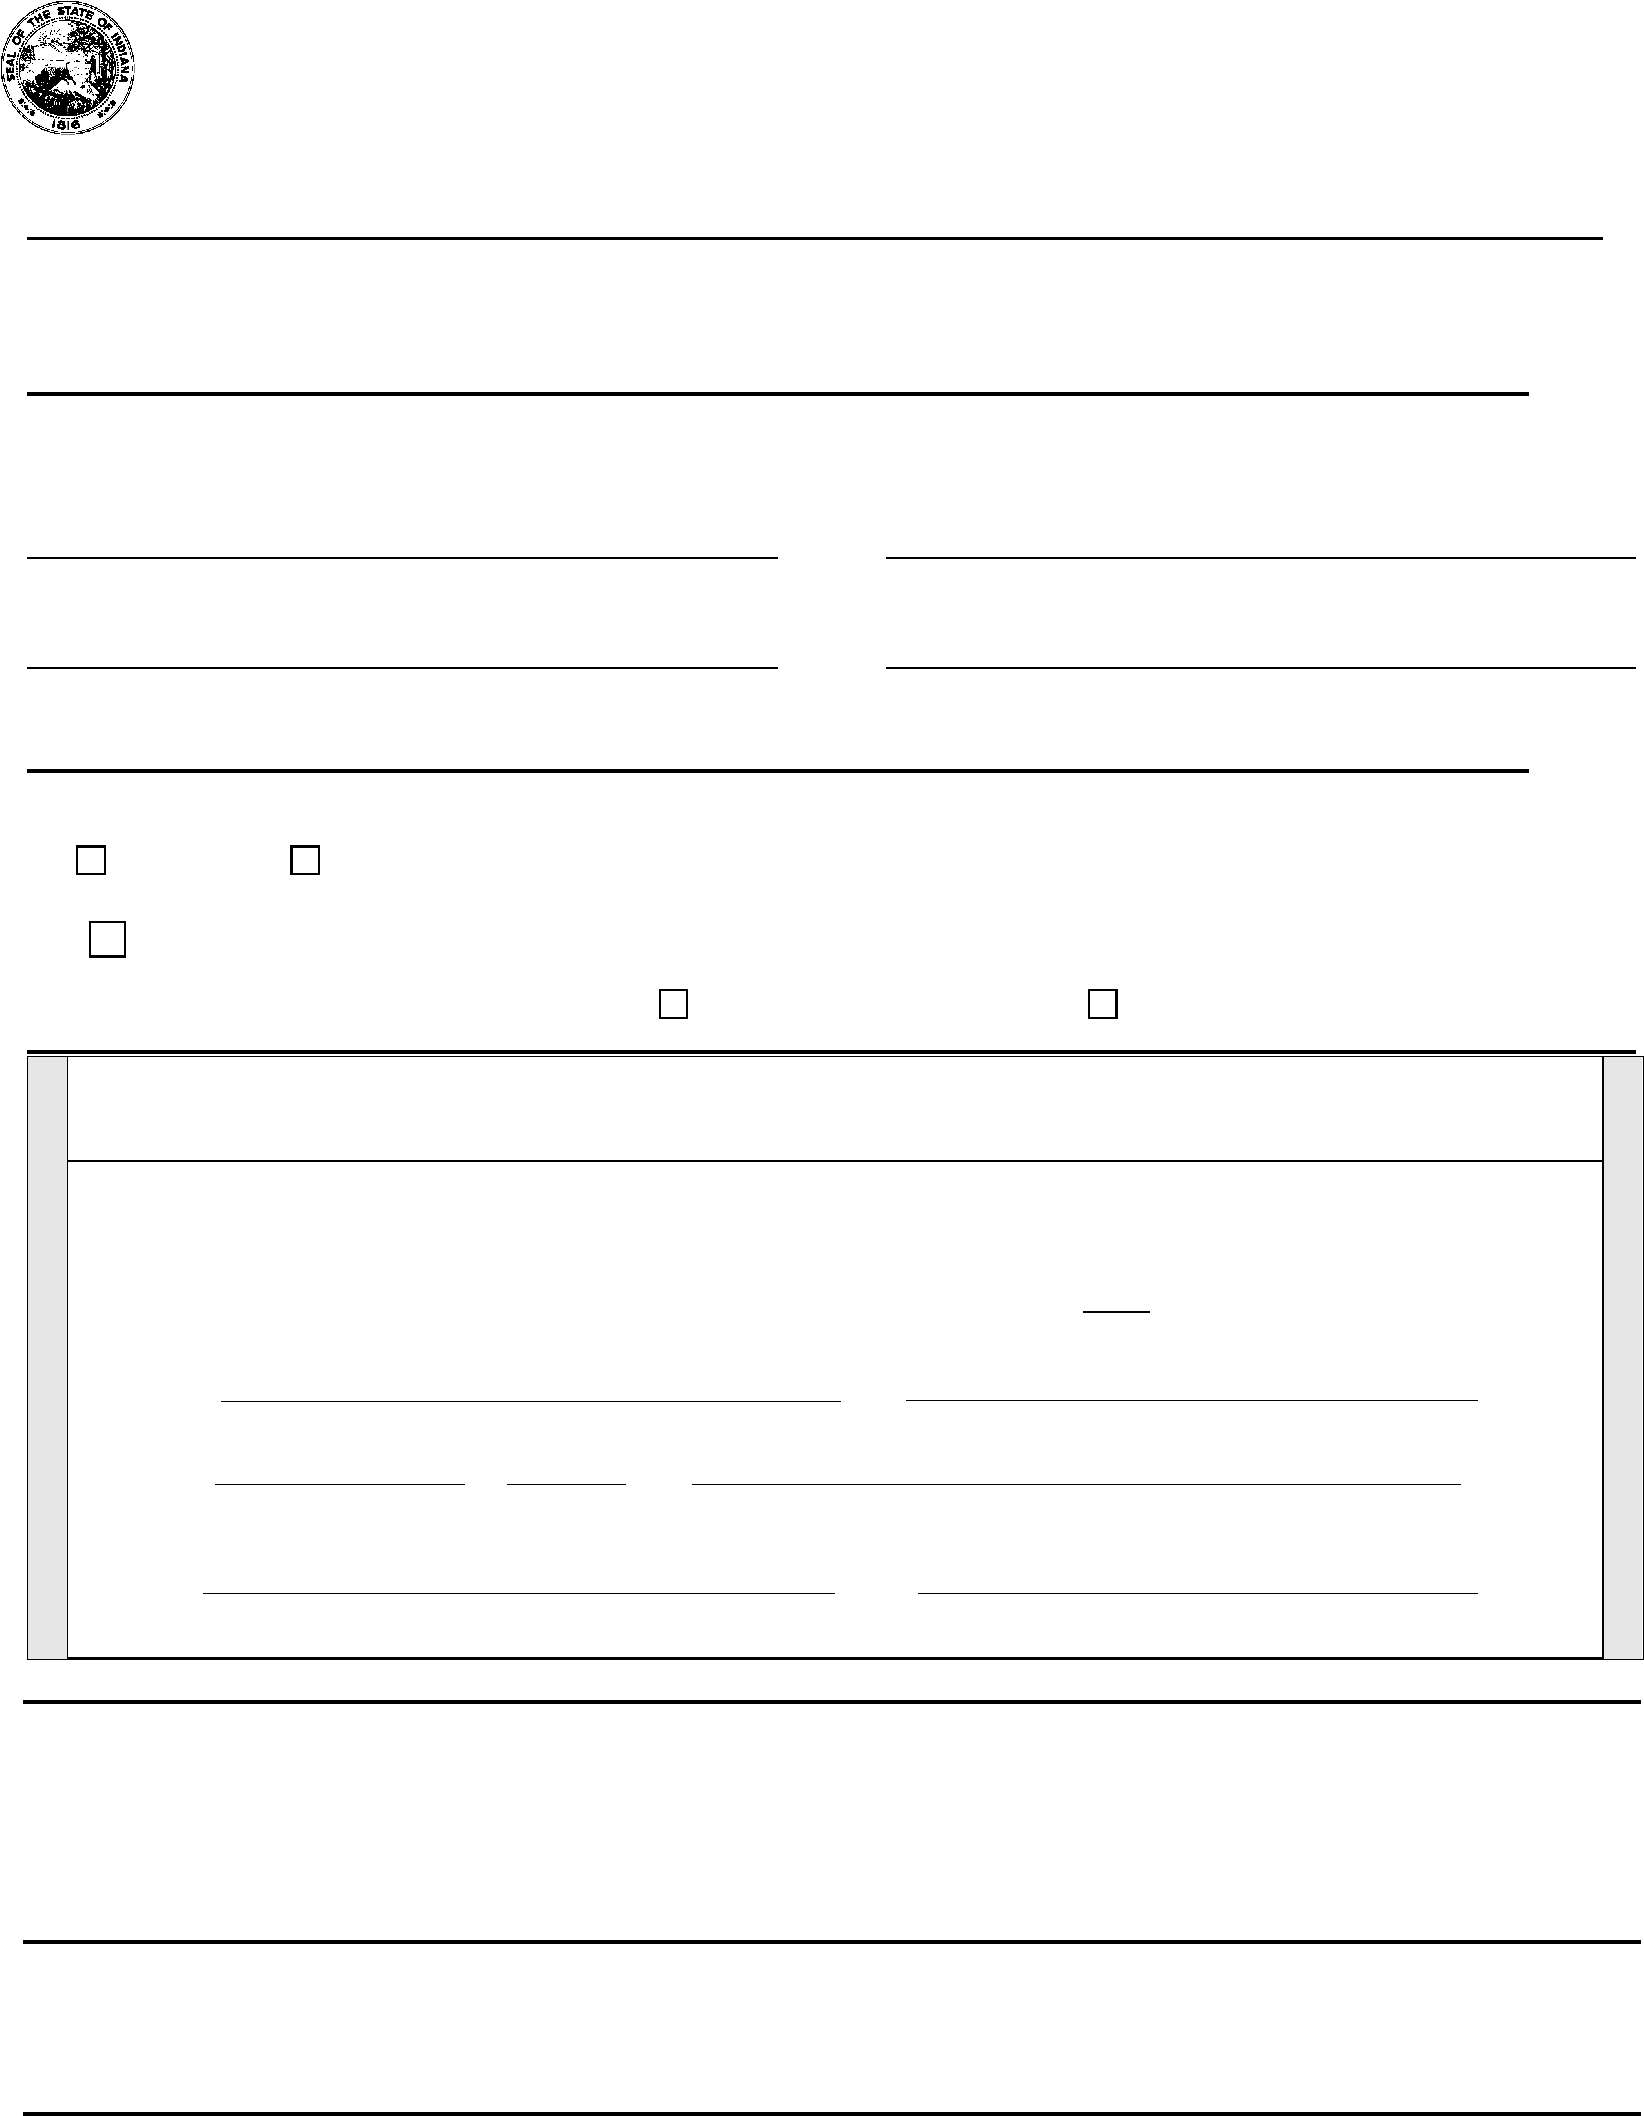 Automated Direct Deposit Authorization Agreement Form